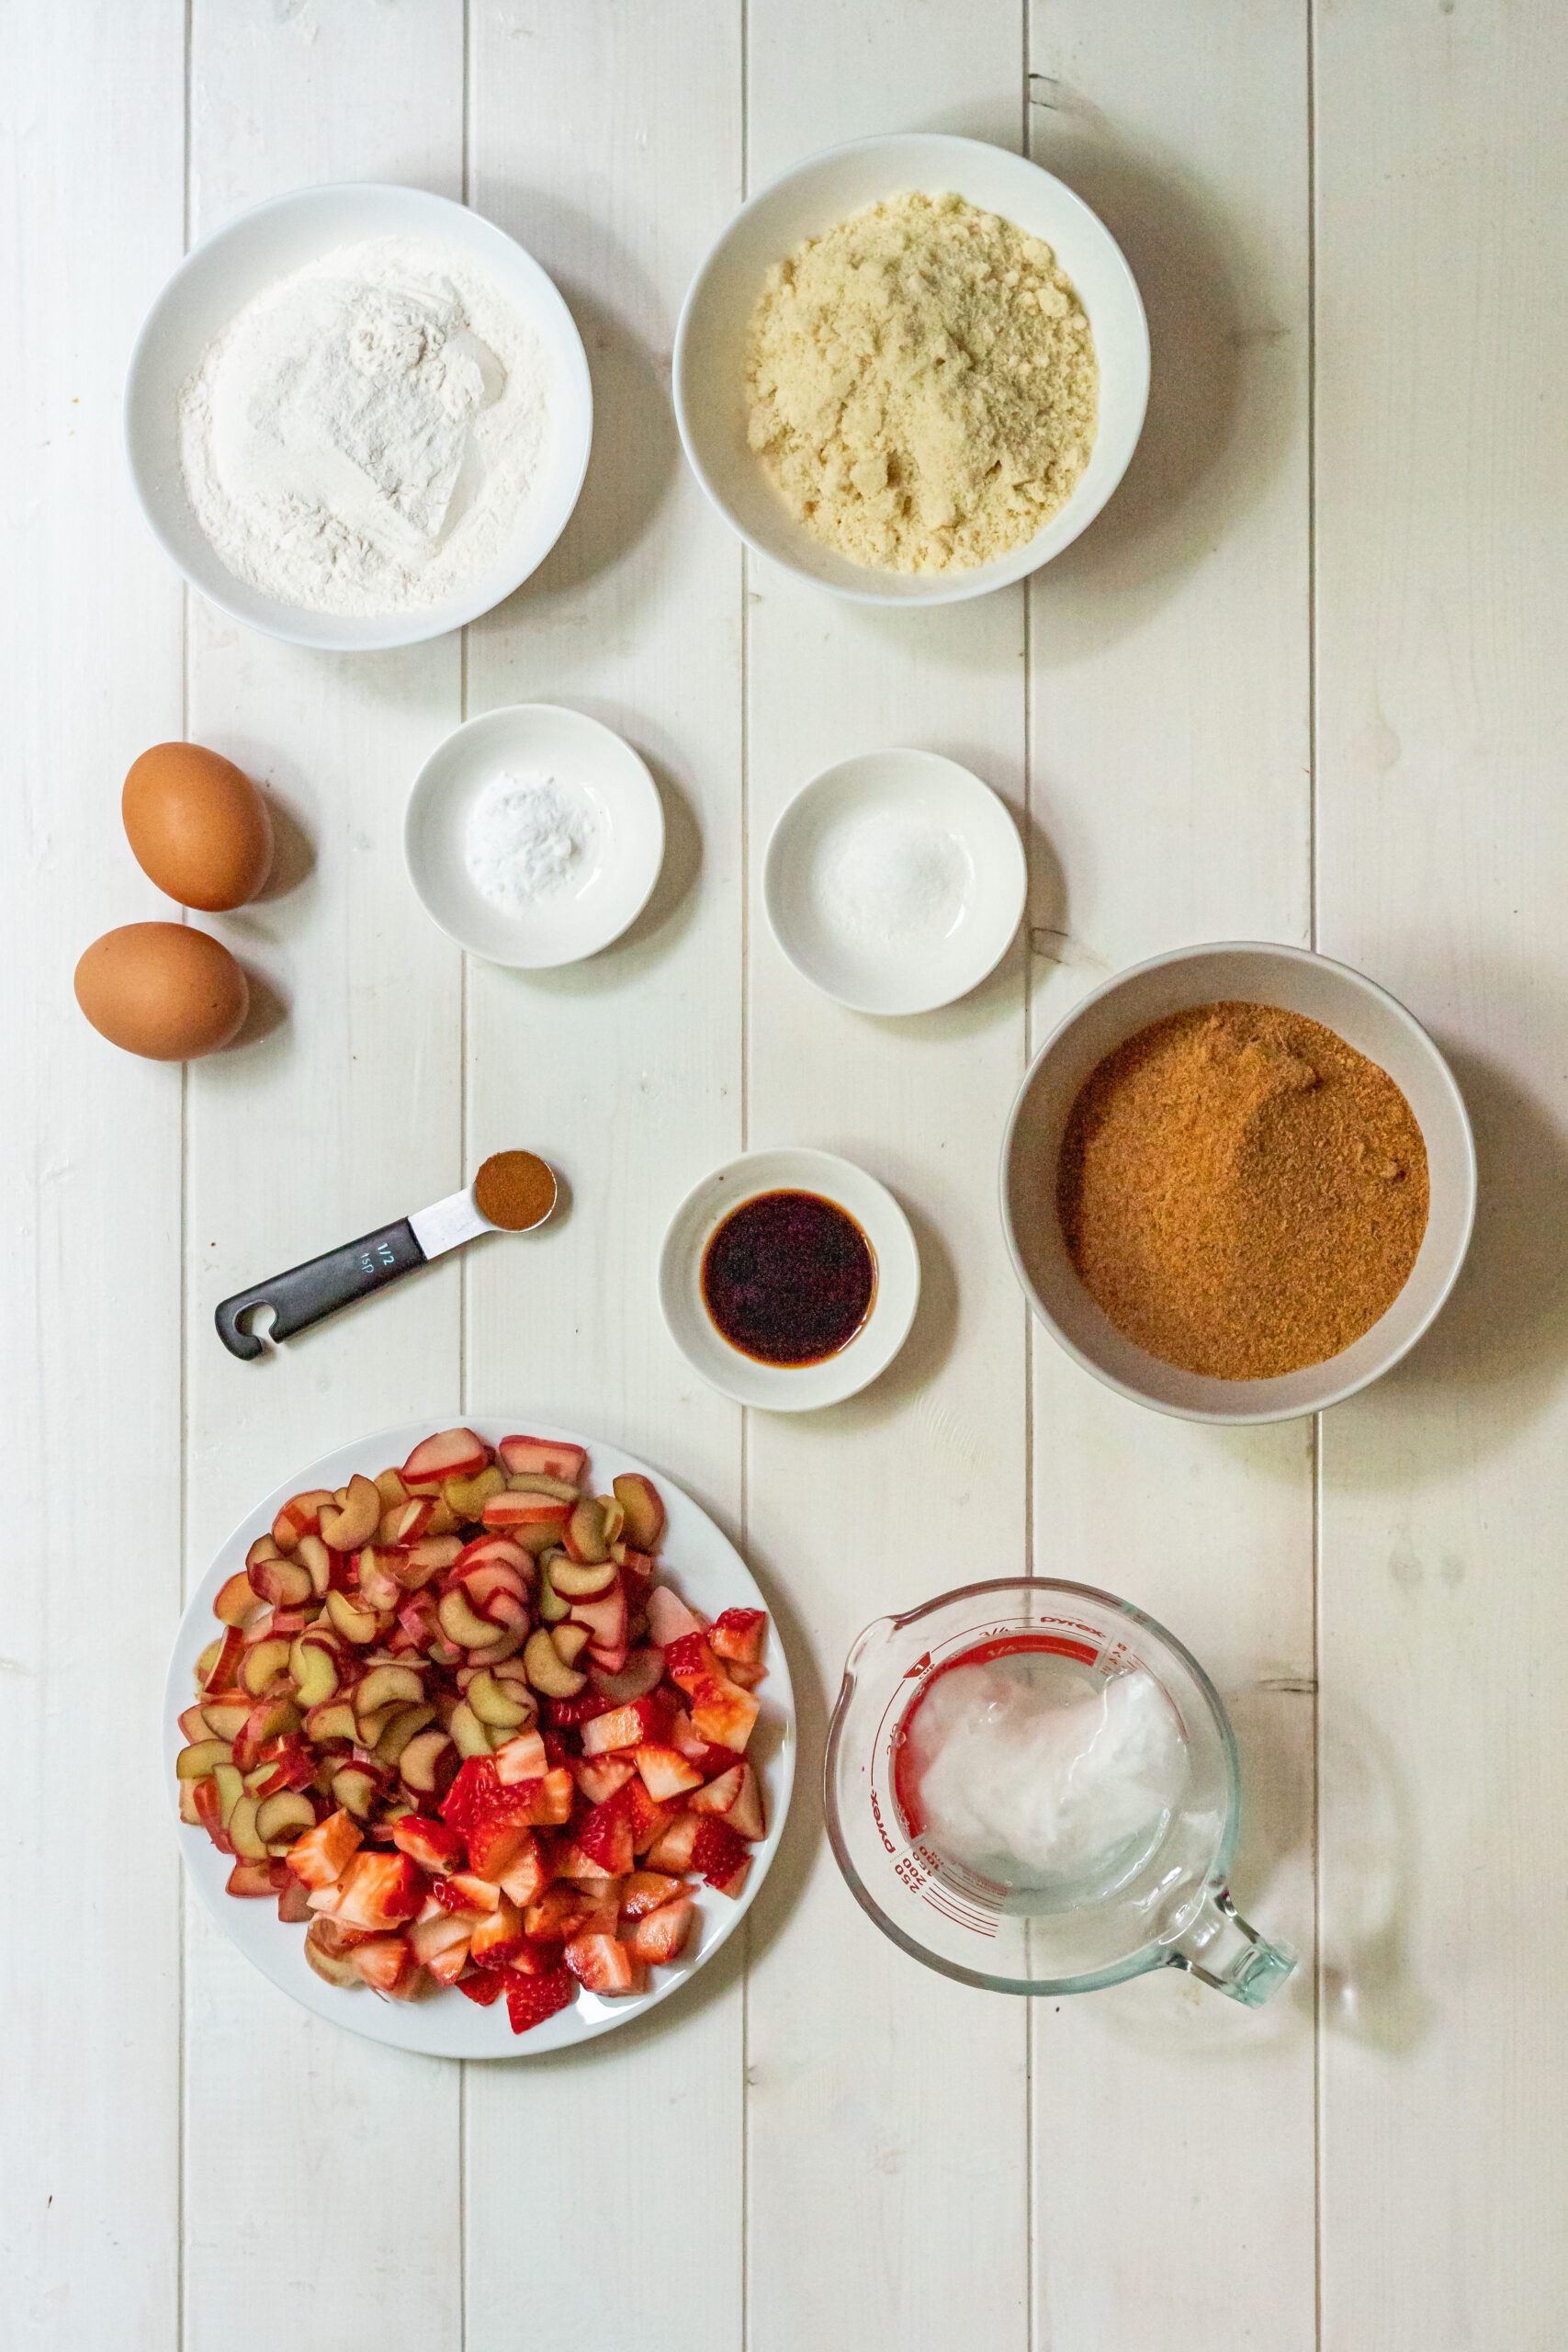 An overhead view of the 10 ingredients needed to make gluten free rhubarb cake.